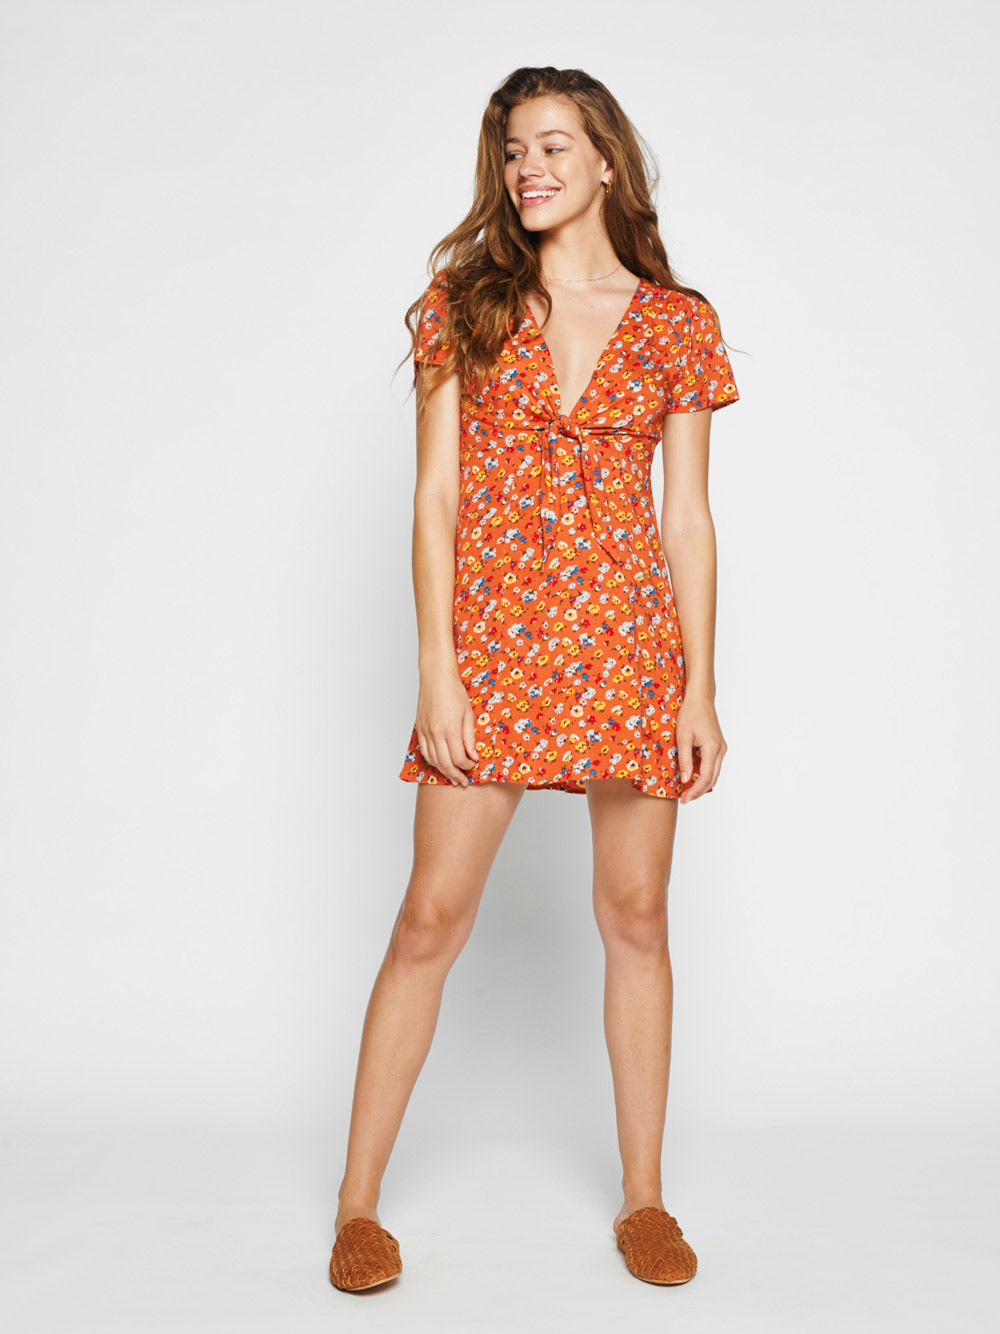 AUGUSTE Agnes Fleur Mini Dress - Rust